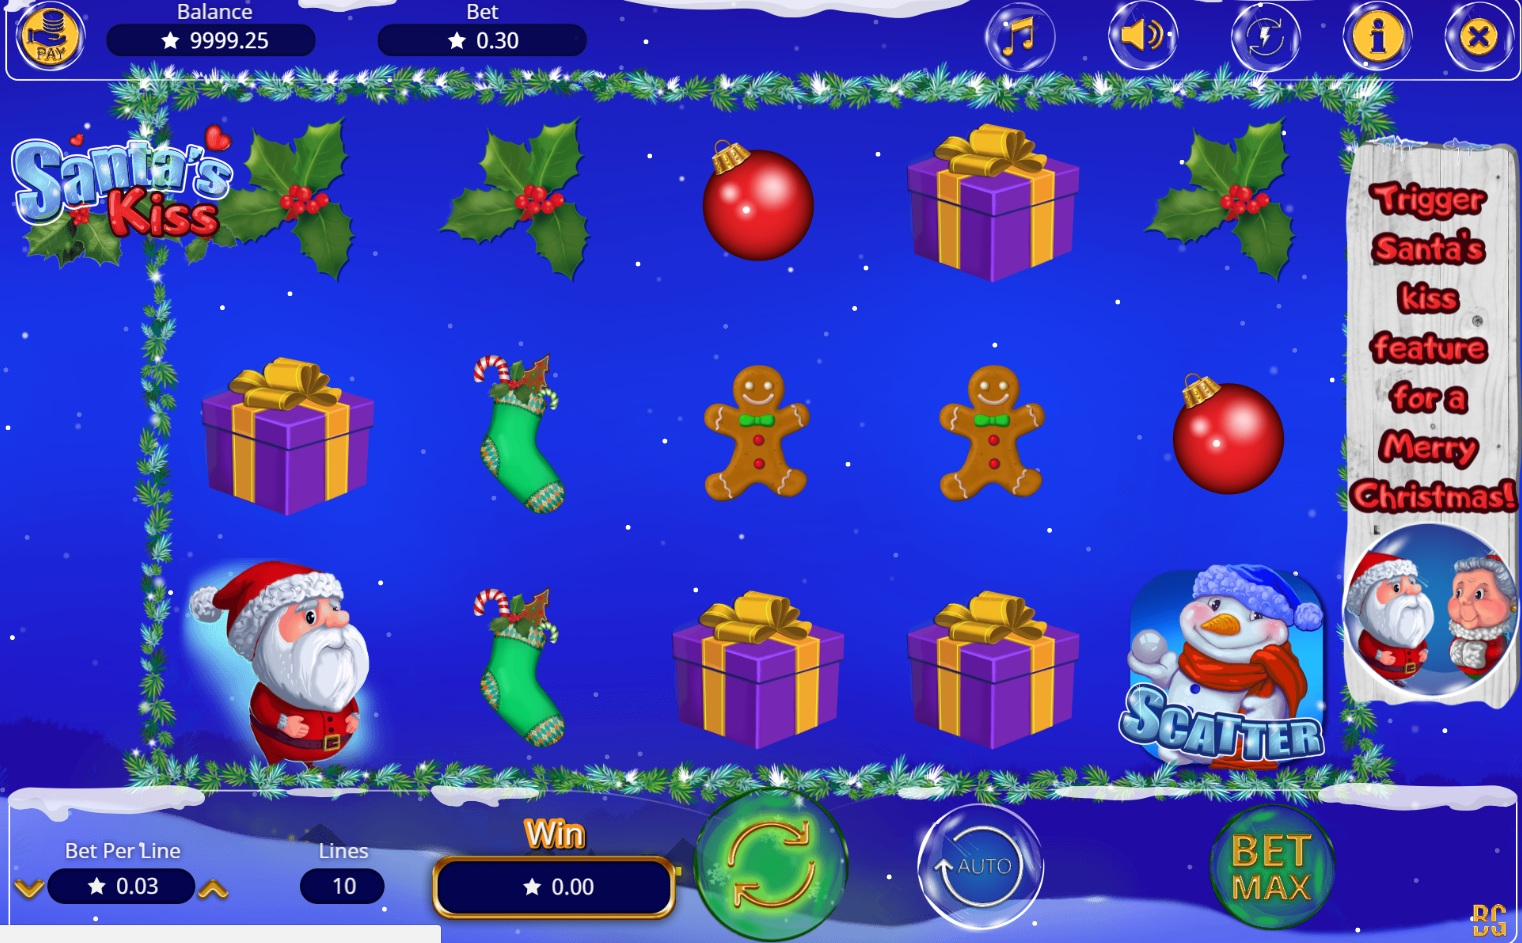 Santas Kiss Slot Machine Online ᐈ Booming Games™ Casino Slots